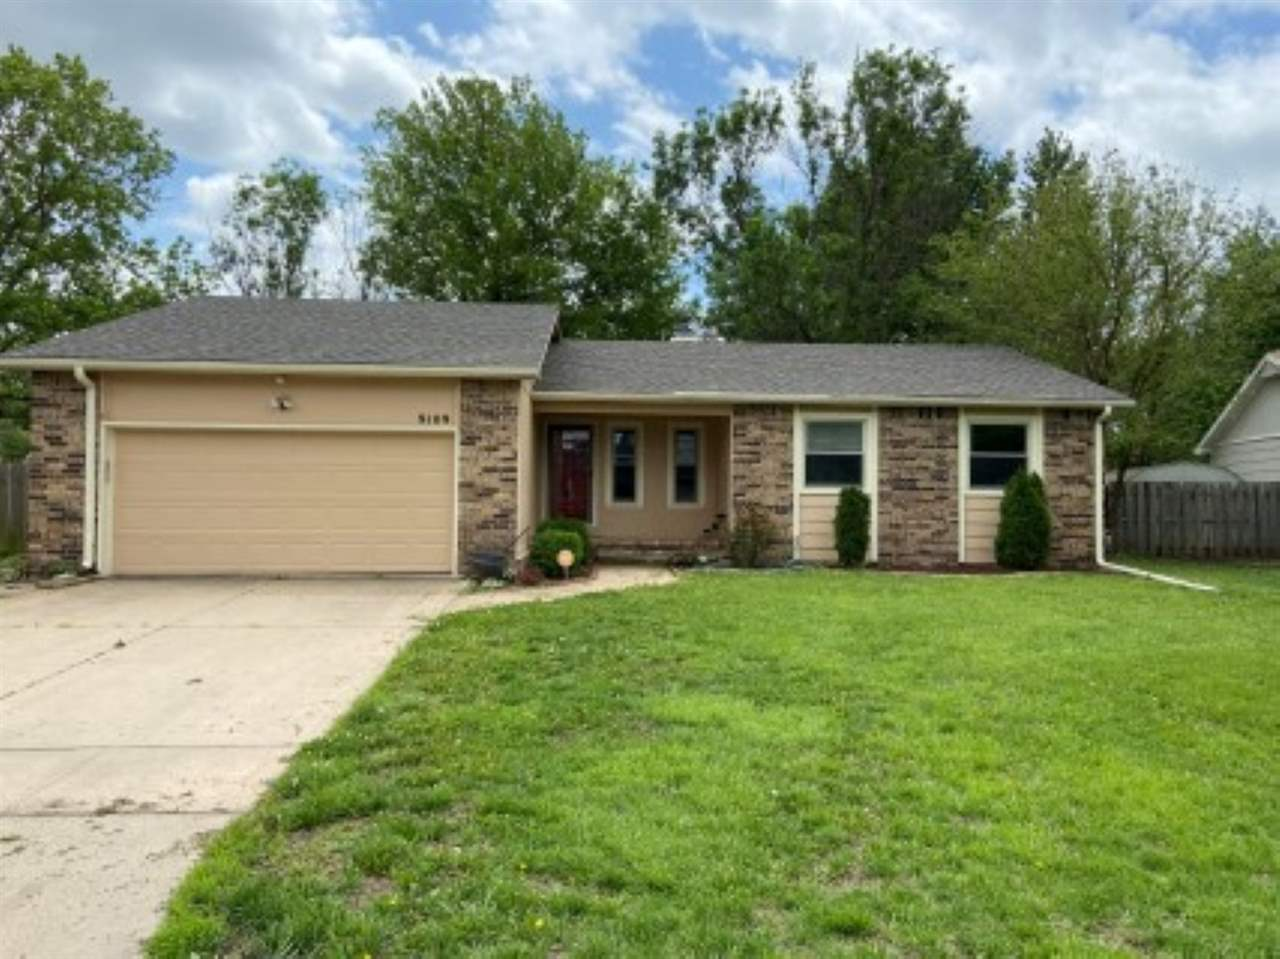 What a wonderful updated home in maize school district.  Updated kitchen and bathrooms make this old